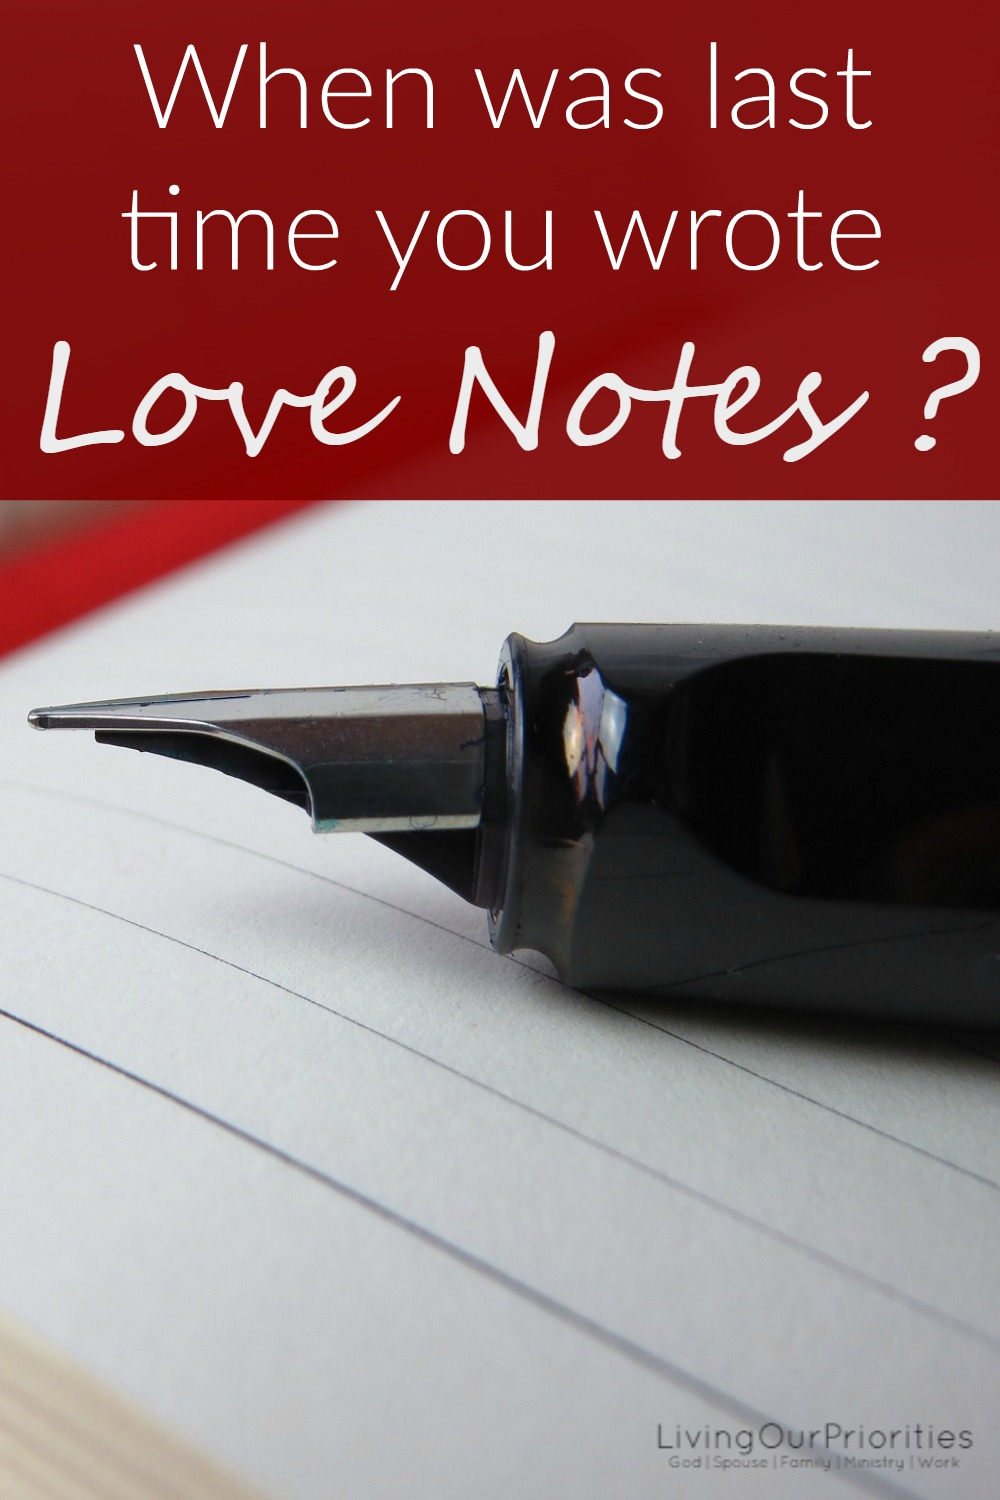 When was the last time you wrote a love note?